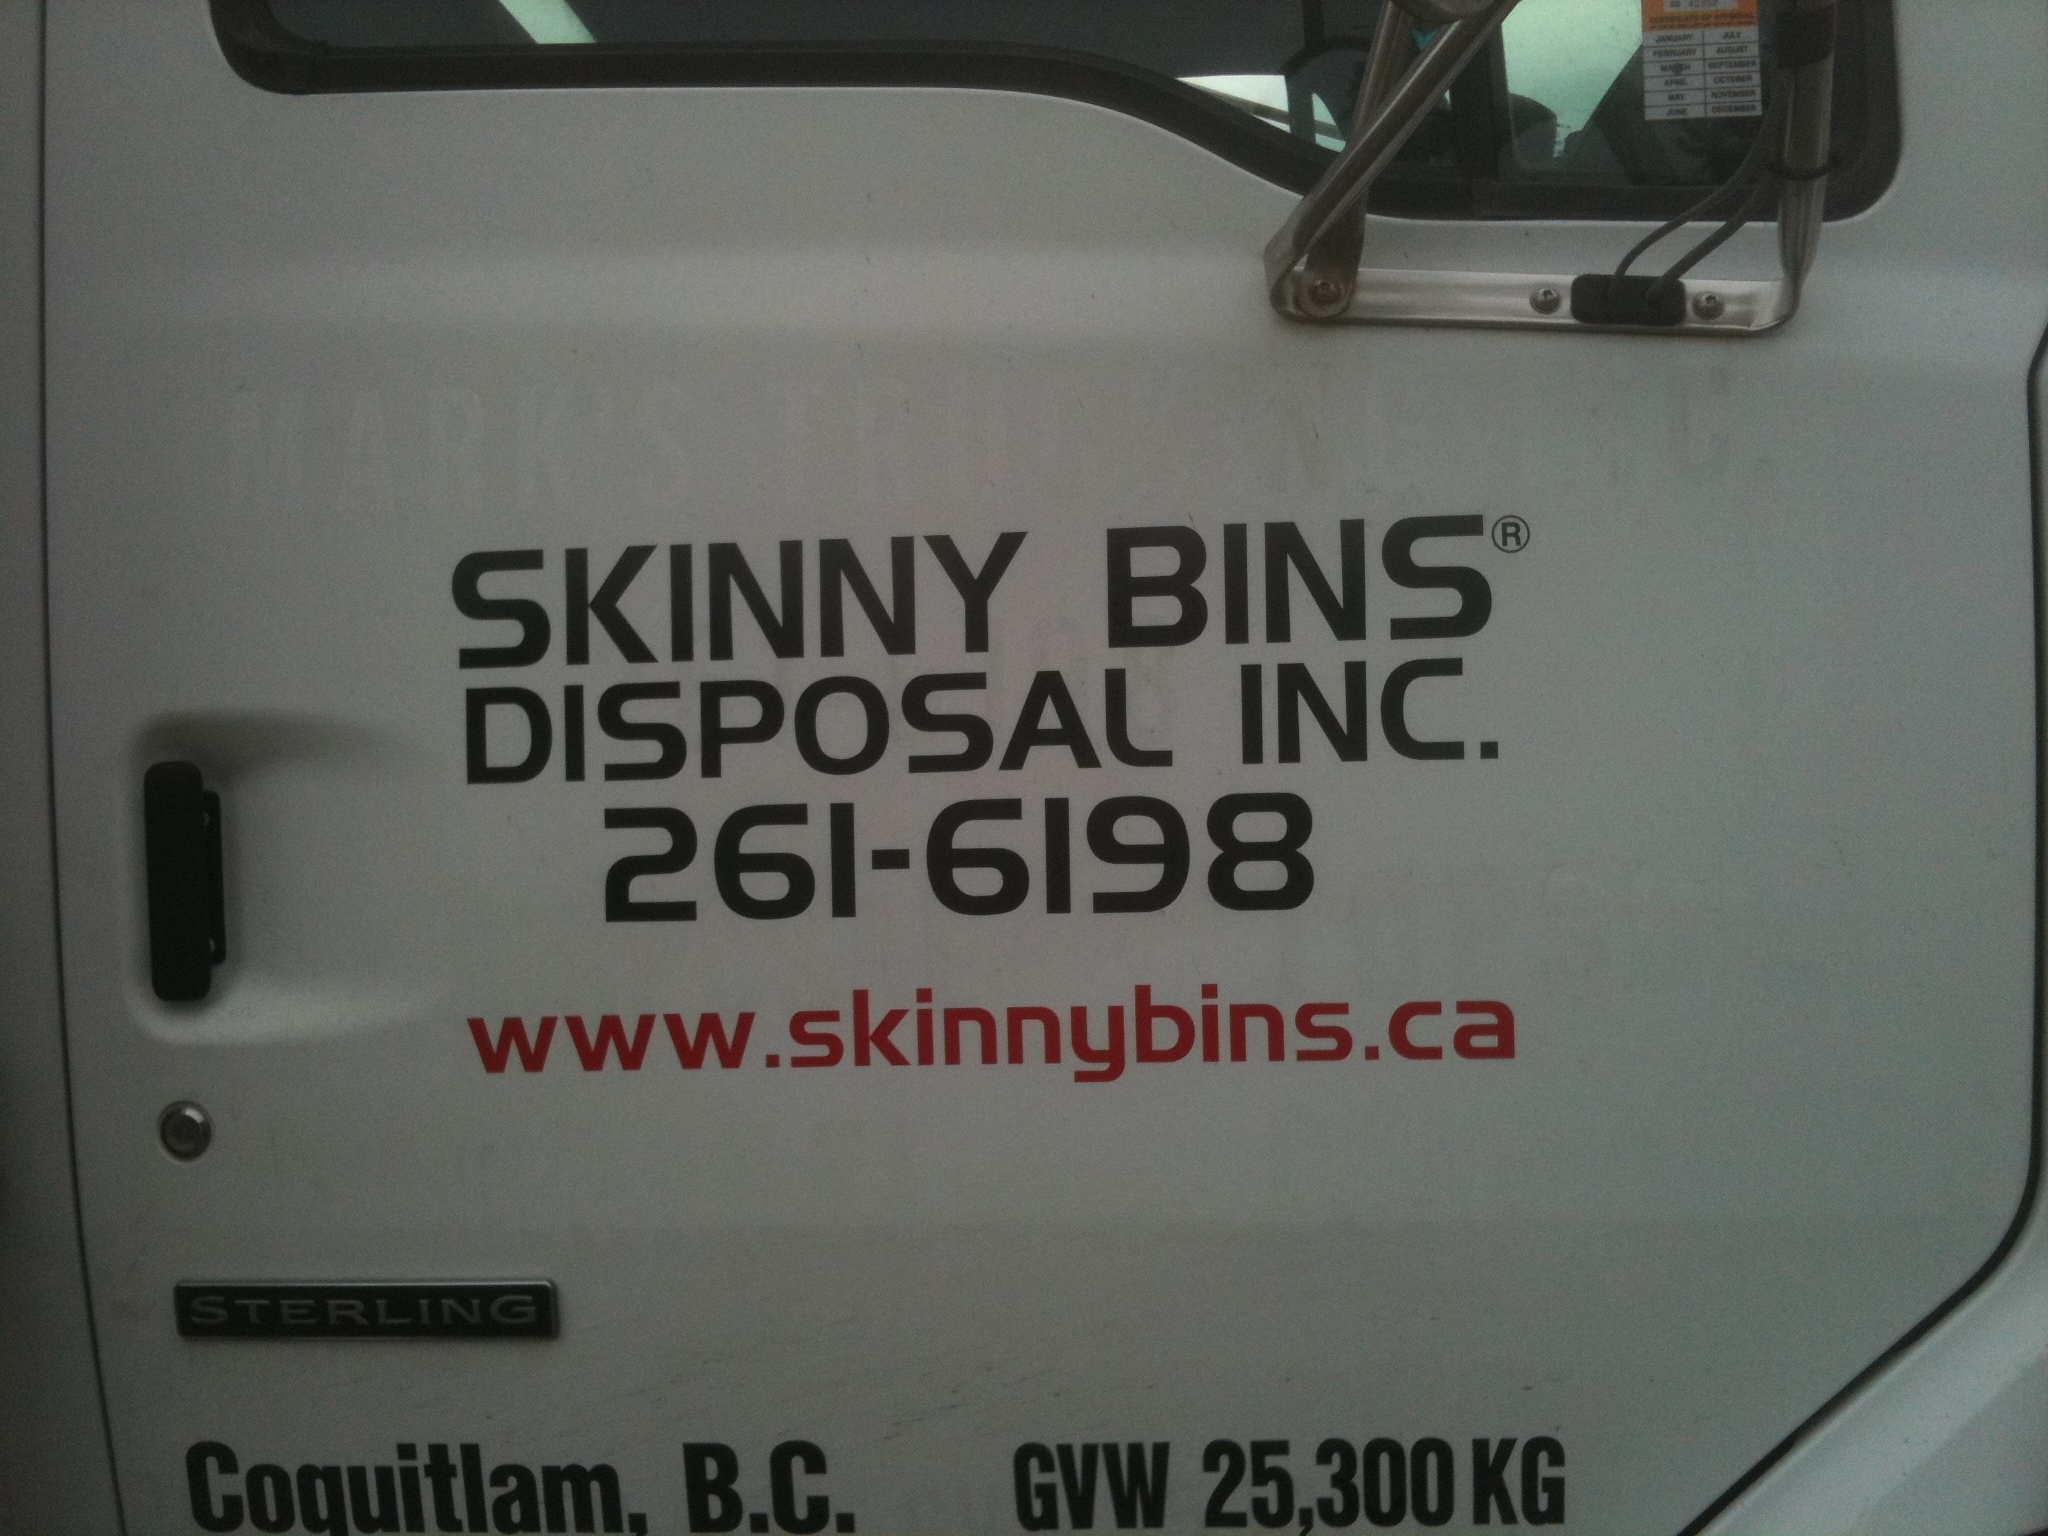 Skinny Bins Disposal in Coquitlam